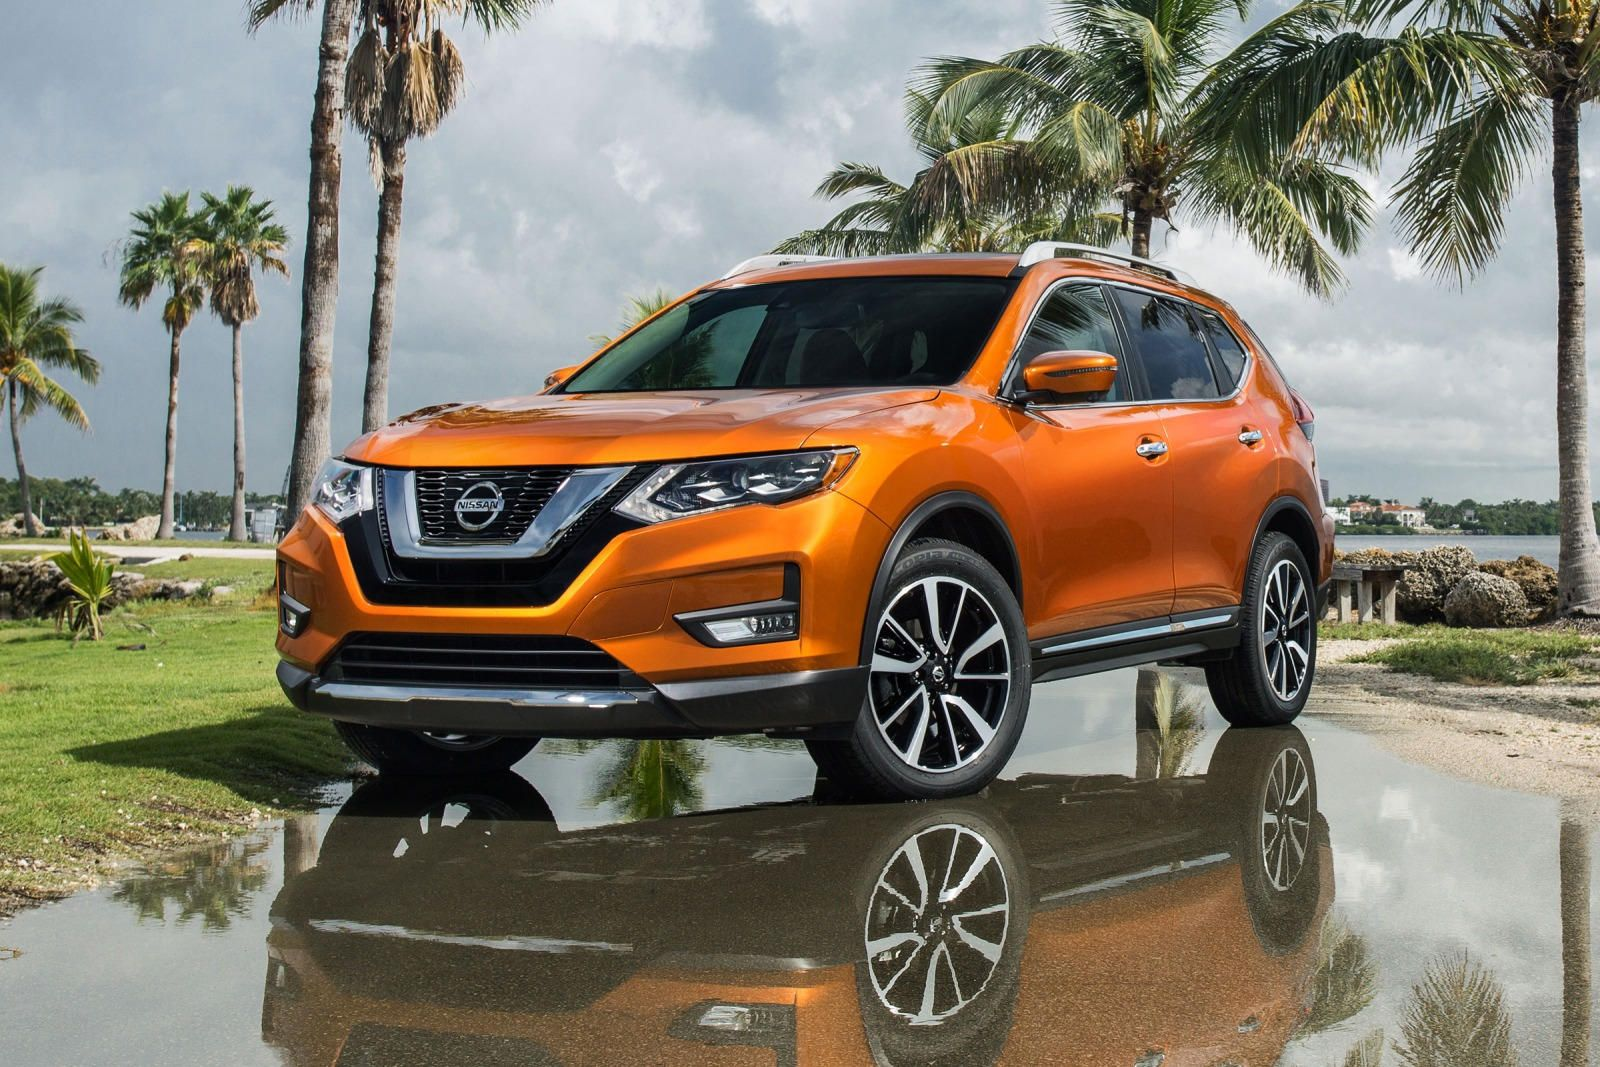 Check Out 2018 Nissan Rogue Test Drive Review Price Details Trims And Specs Overview Interior Features E In 2020 Nissan Rogue Nissan Xtrail New Nissan